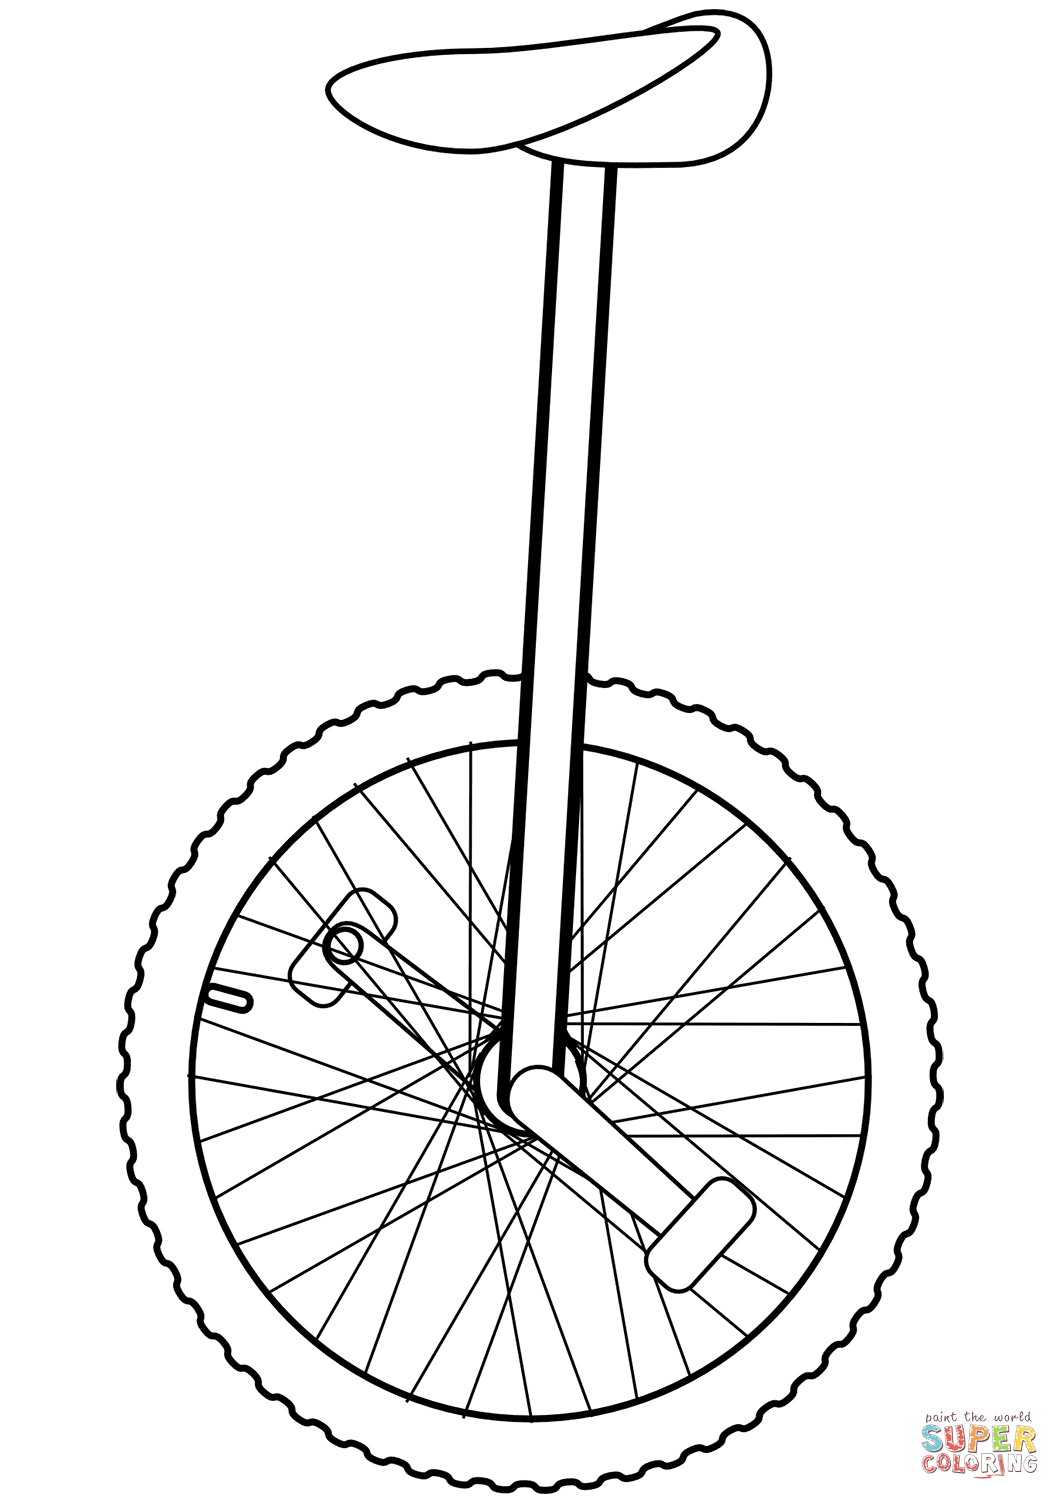 Unicycle Coloring Page From Bicycles Category Select From Printable Crafts Of Cartoons